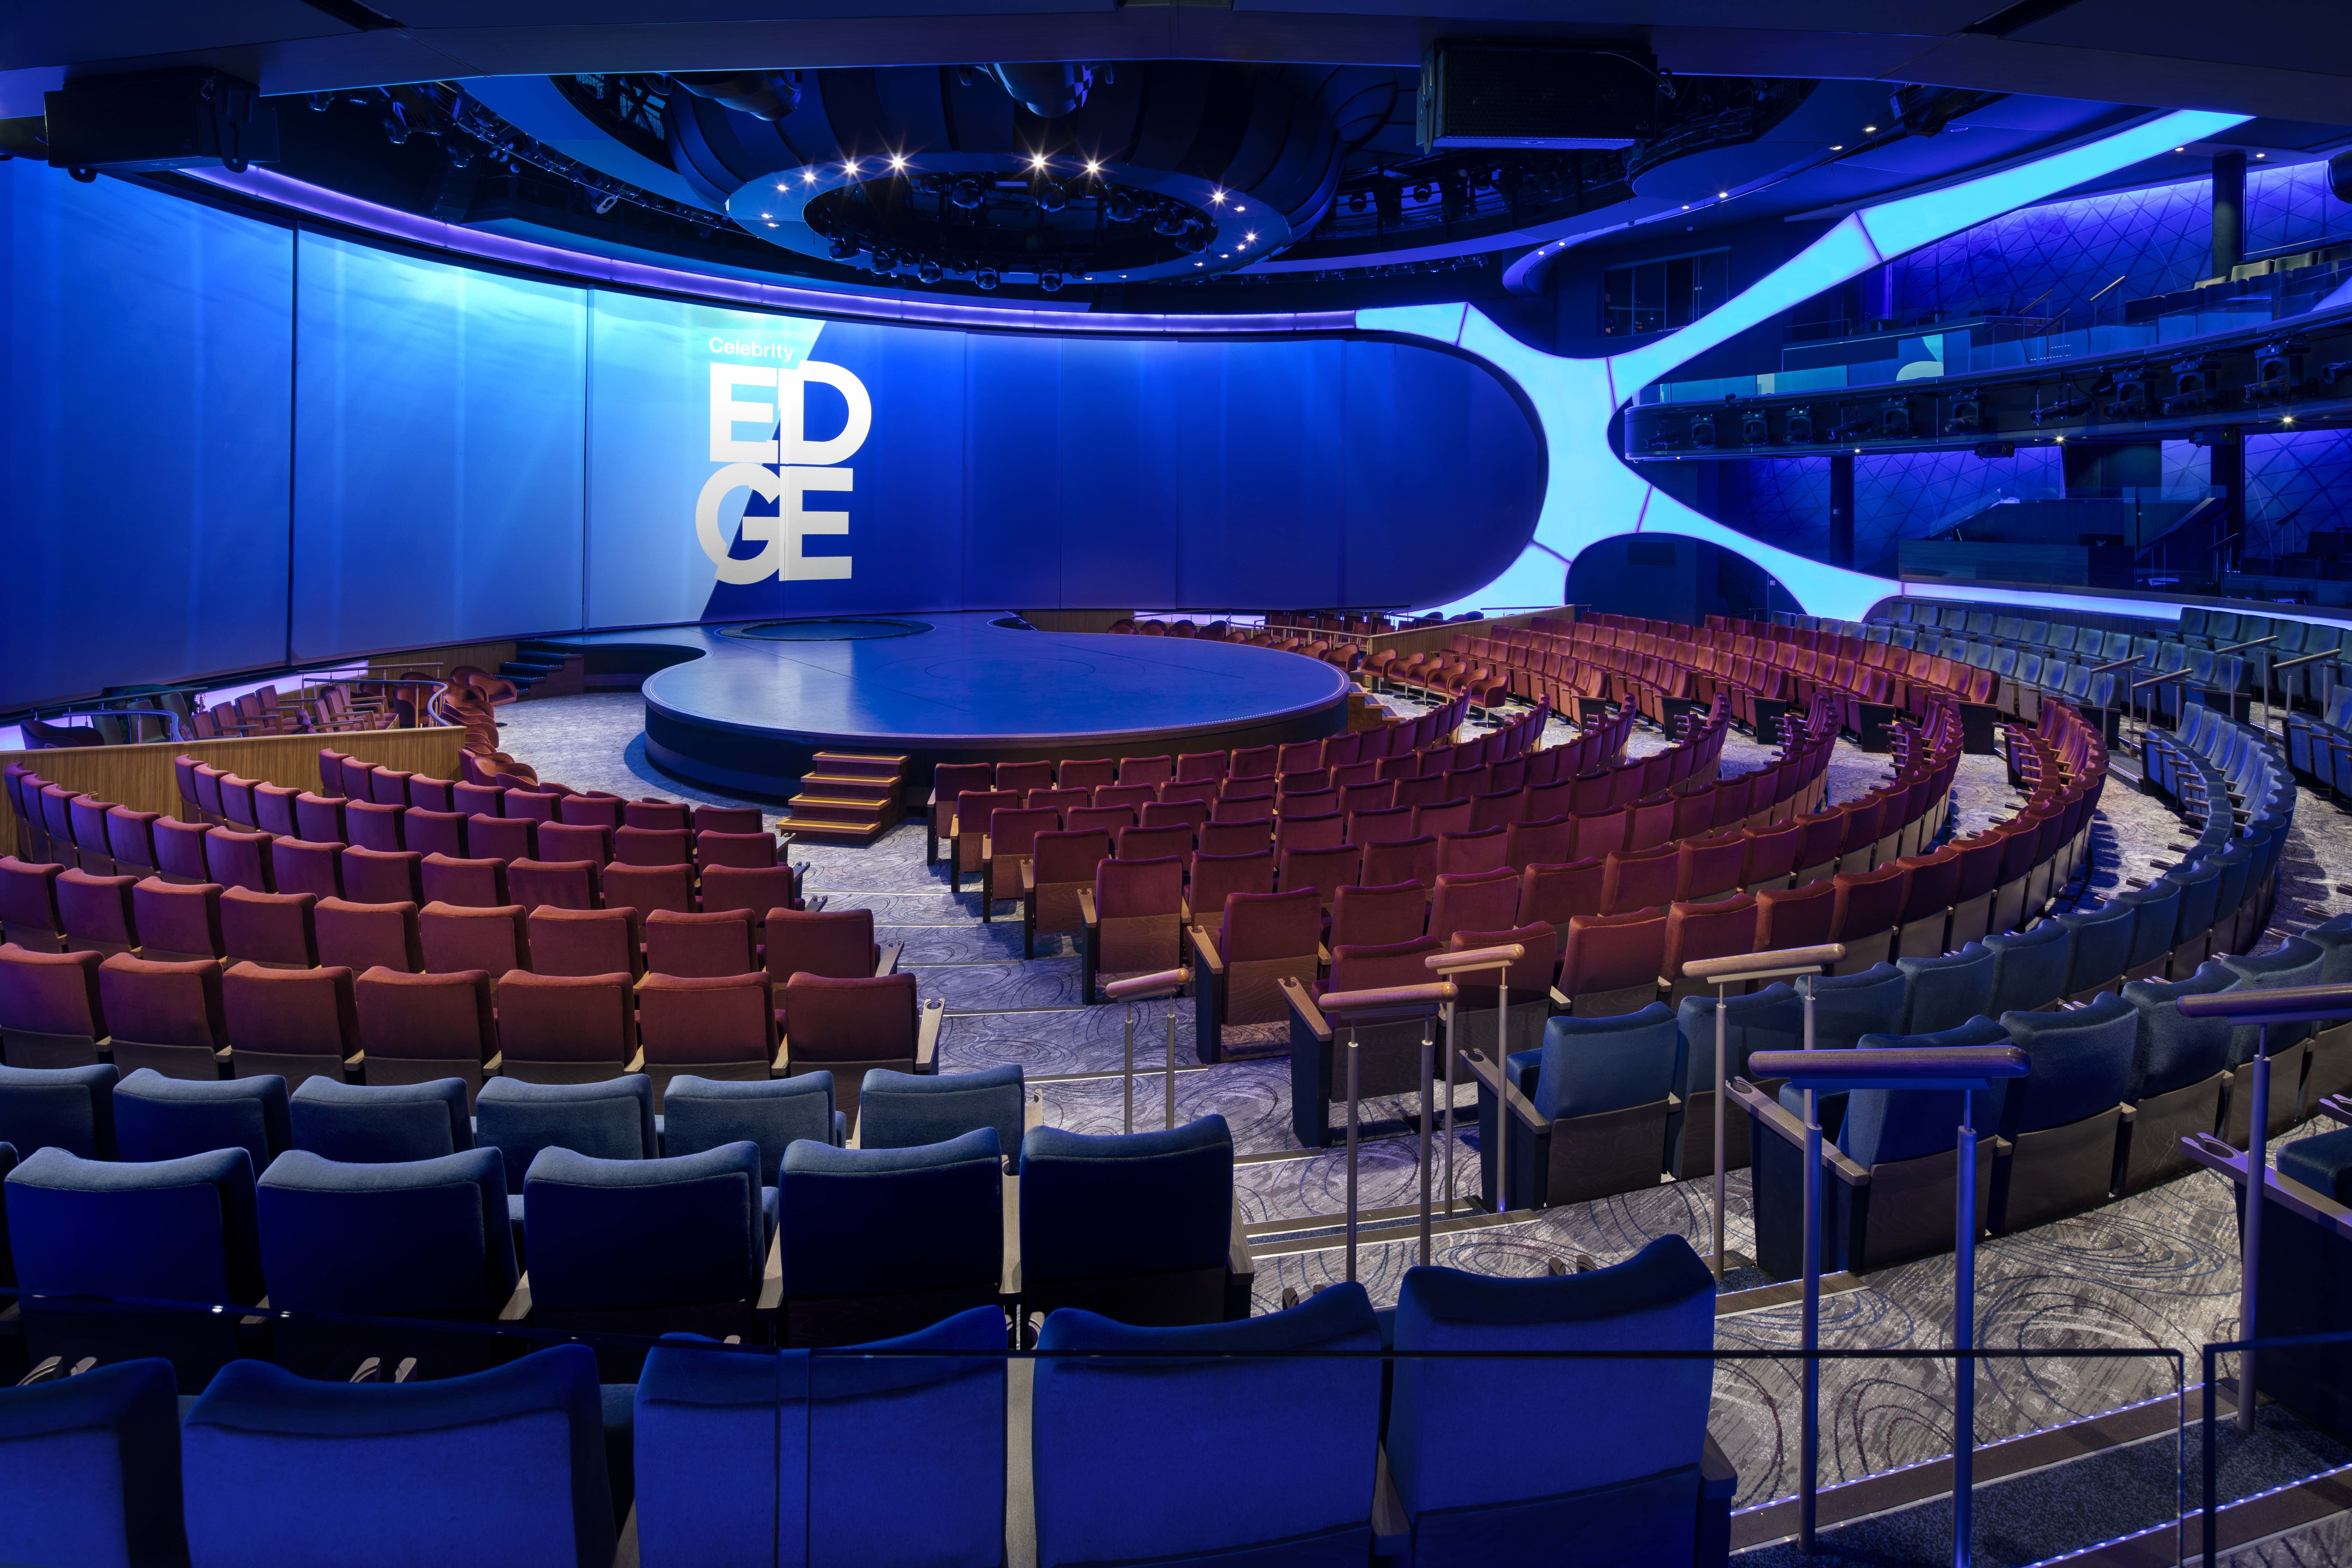 Celebrity Edge, EG, The Theater, theatre, entertainment, onboard, architectural, Celebrity Apex, AX